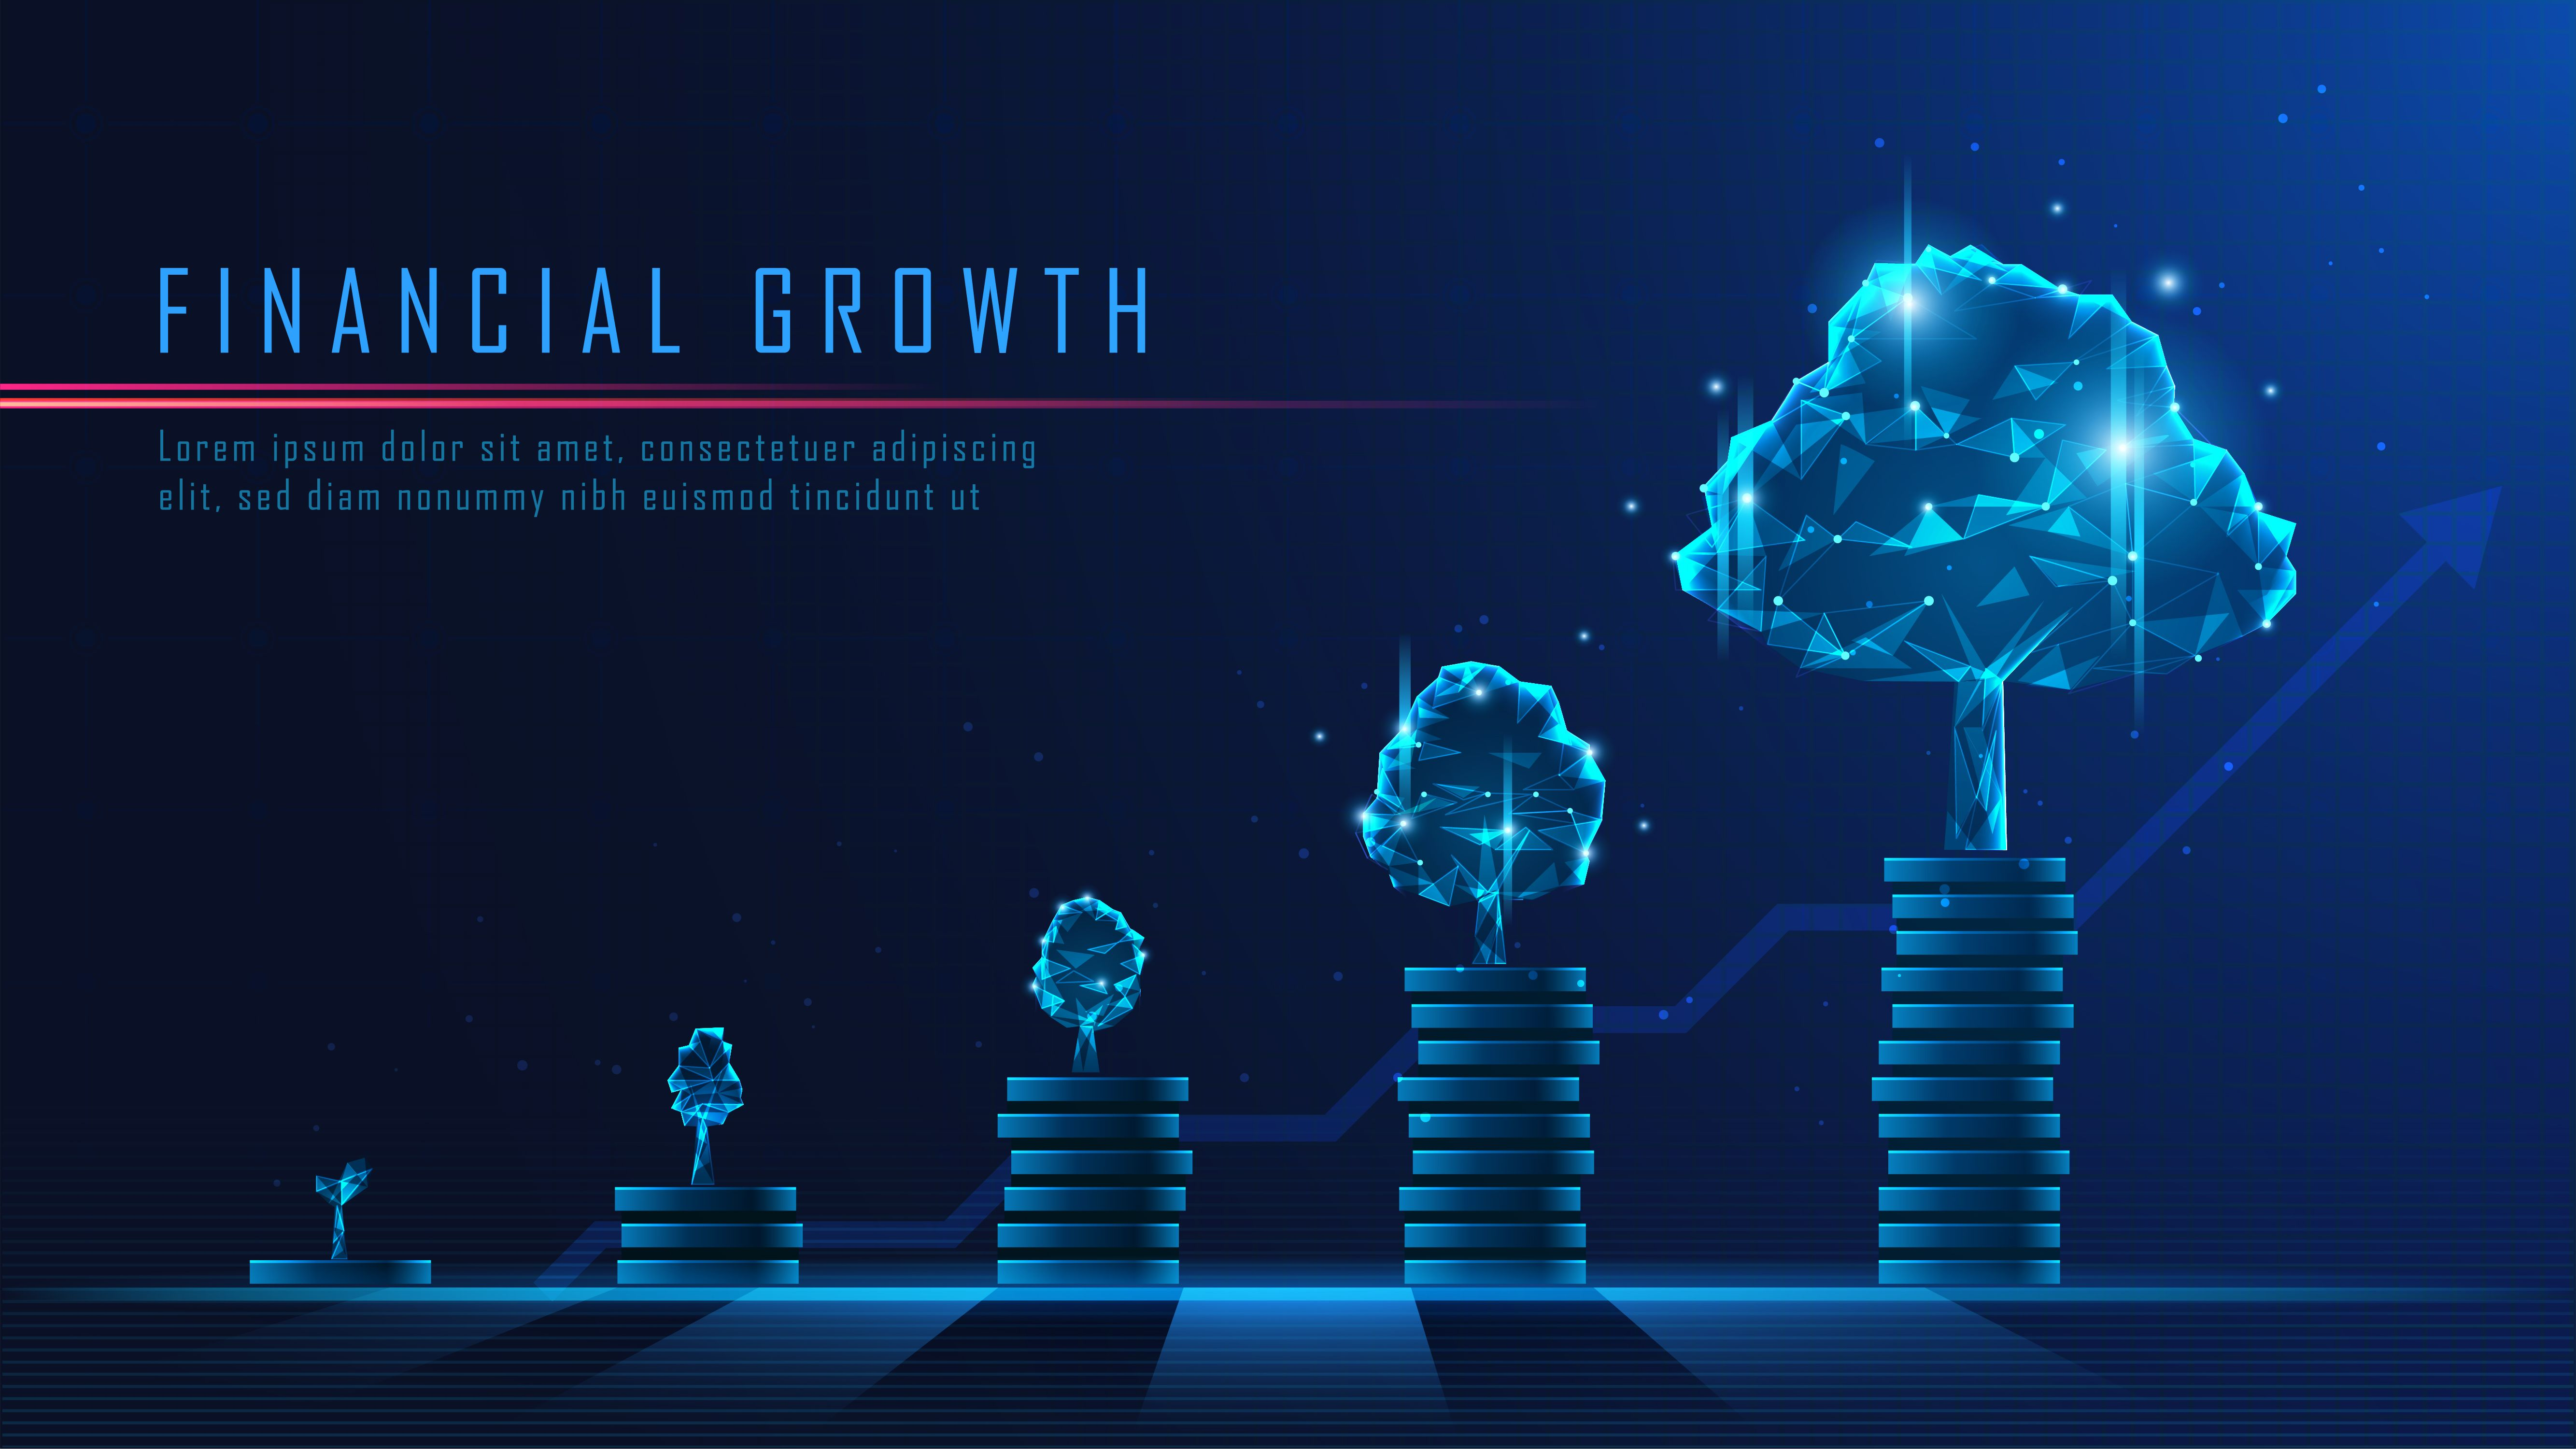 Financial investment growth in futuristic concept suitable